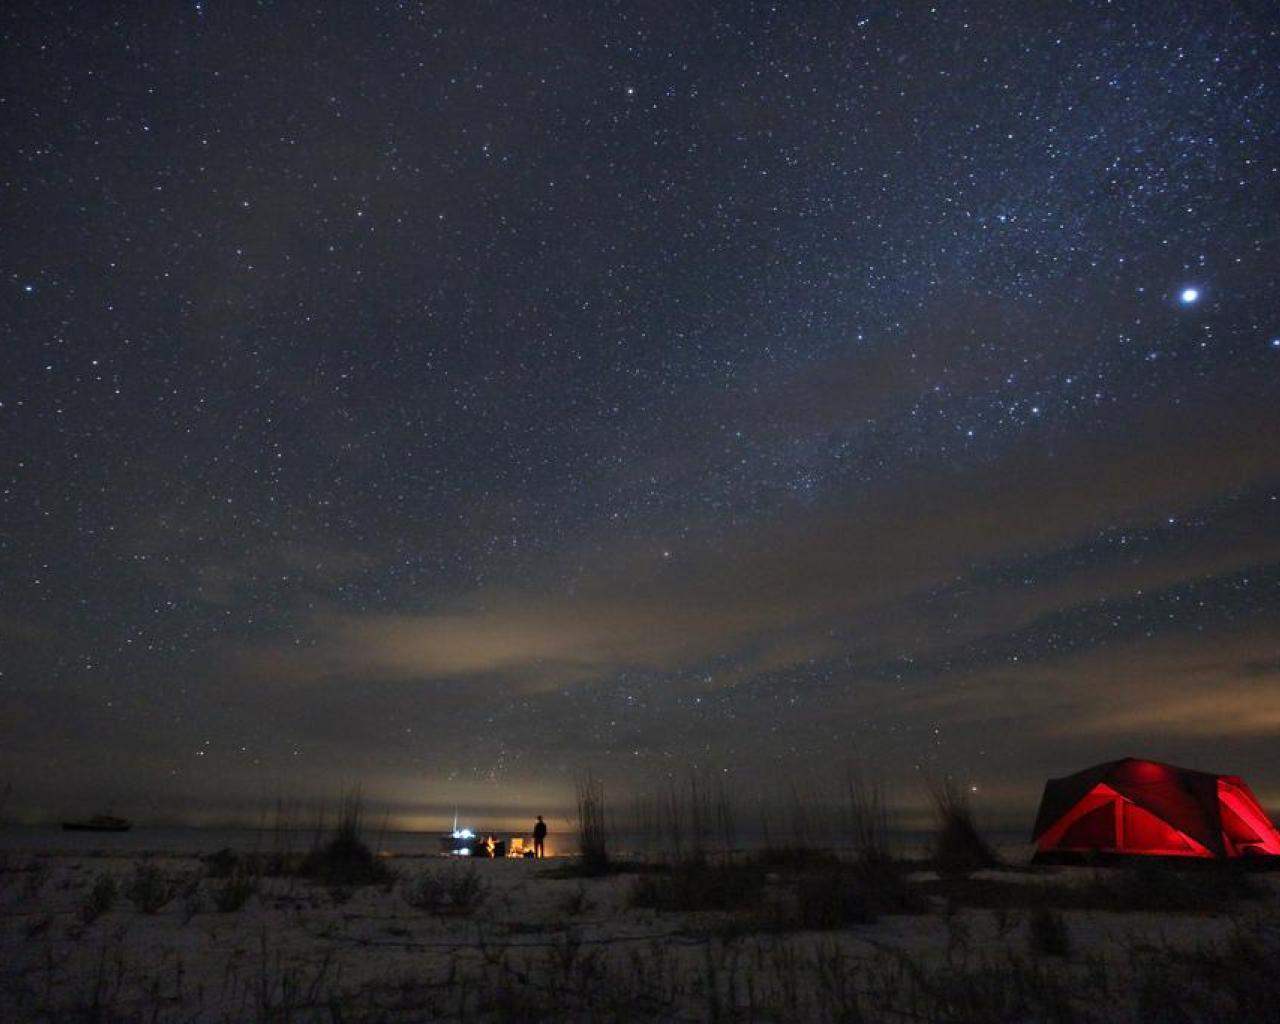 CAMPING UNDER THE STARS WALLPAPER   64519   HD Wallpapers 1280x1024